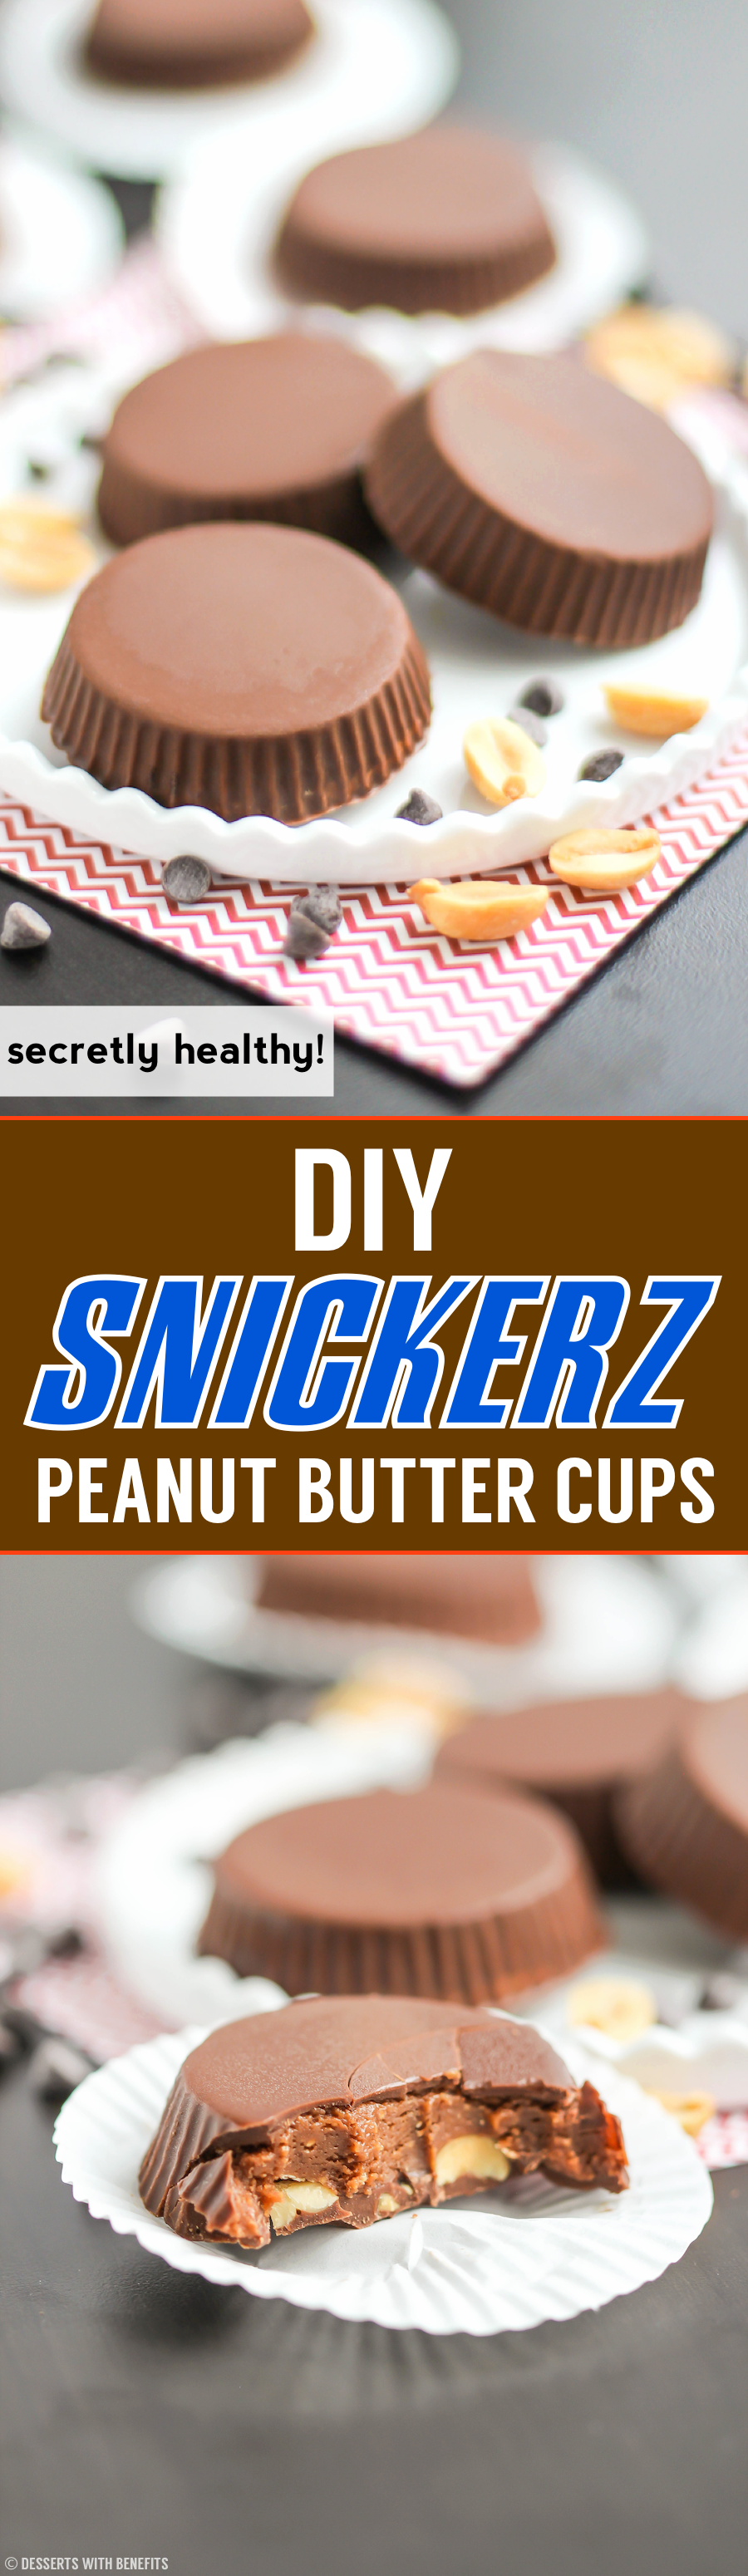 Healthy Snickerz Candy Cups recipe (refined sugar free) - Healthy Dessert Recipes at Desserts with Benefits